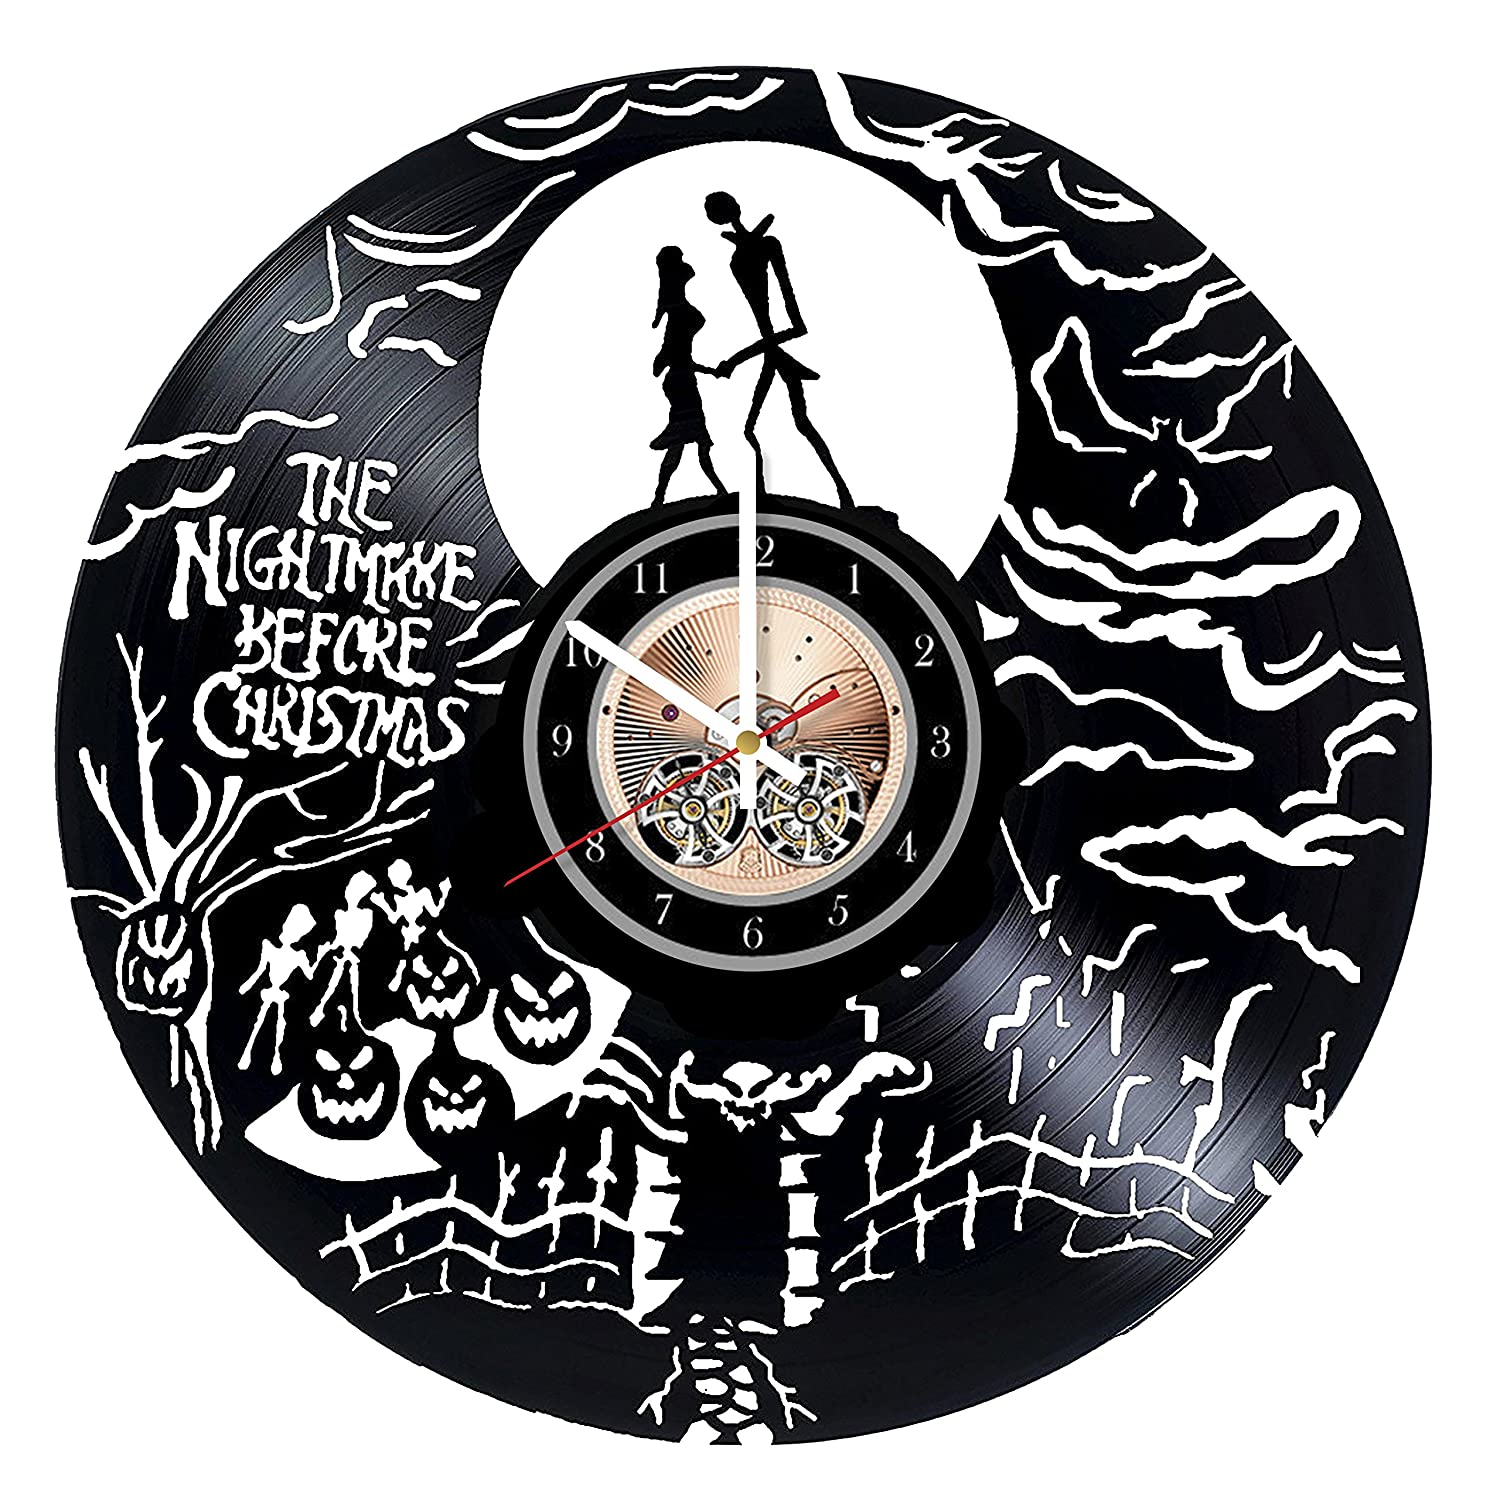 The Nightmare Before Christmas Vinyl Wall Record Jack and Max Genuine Free Shipping 57% OFF Clock